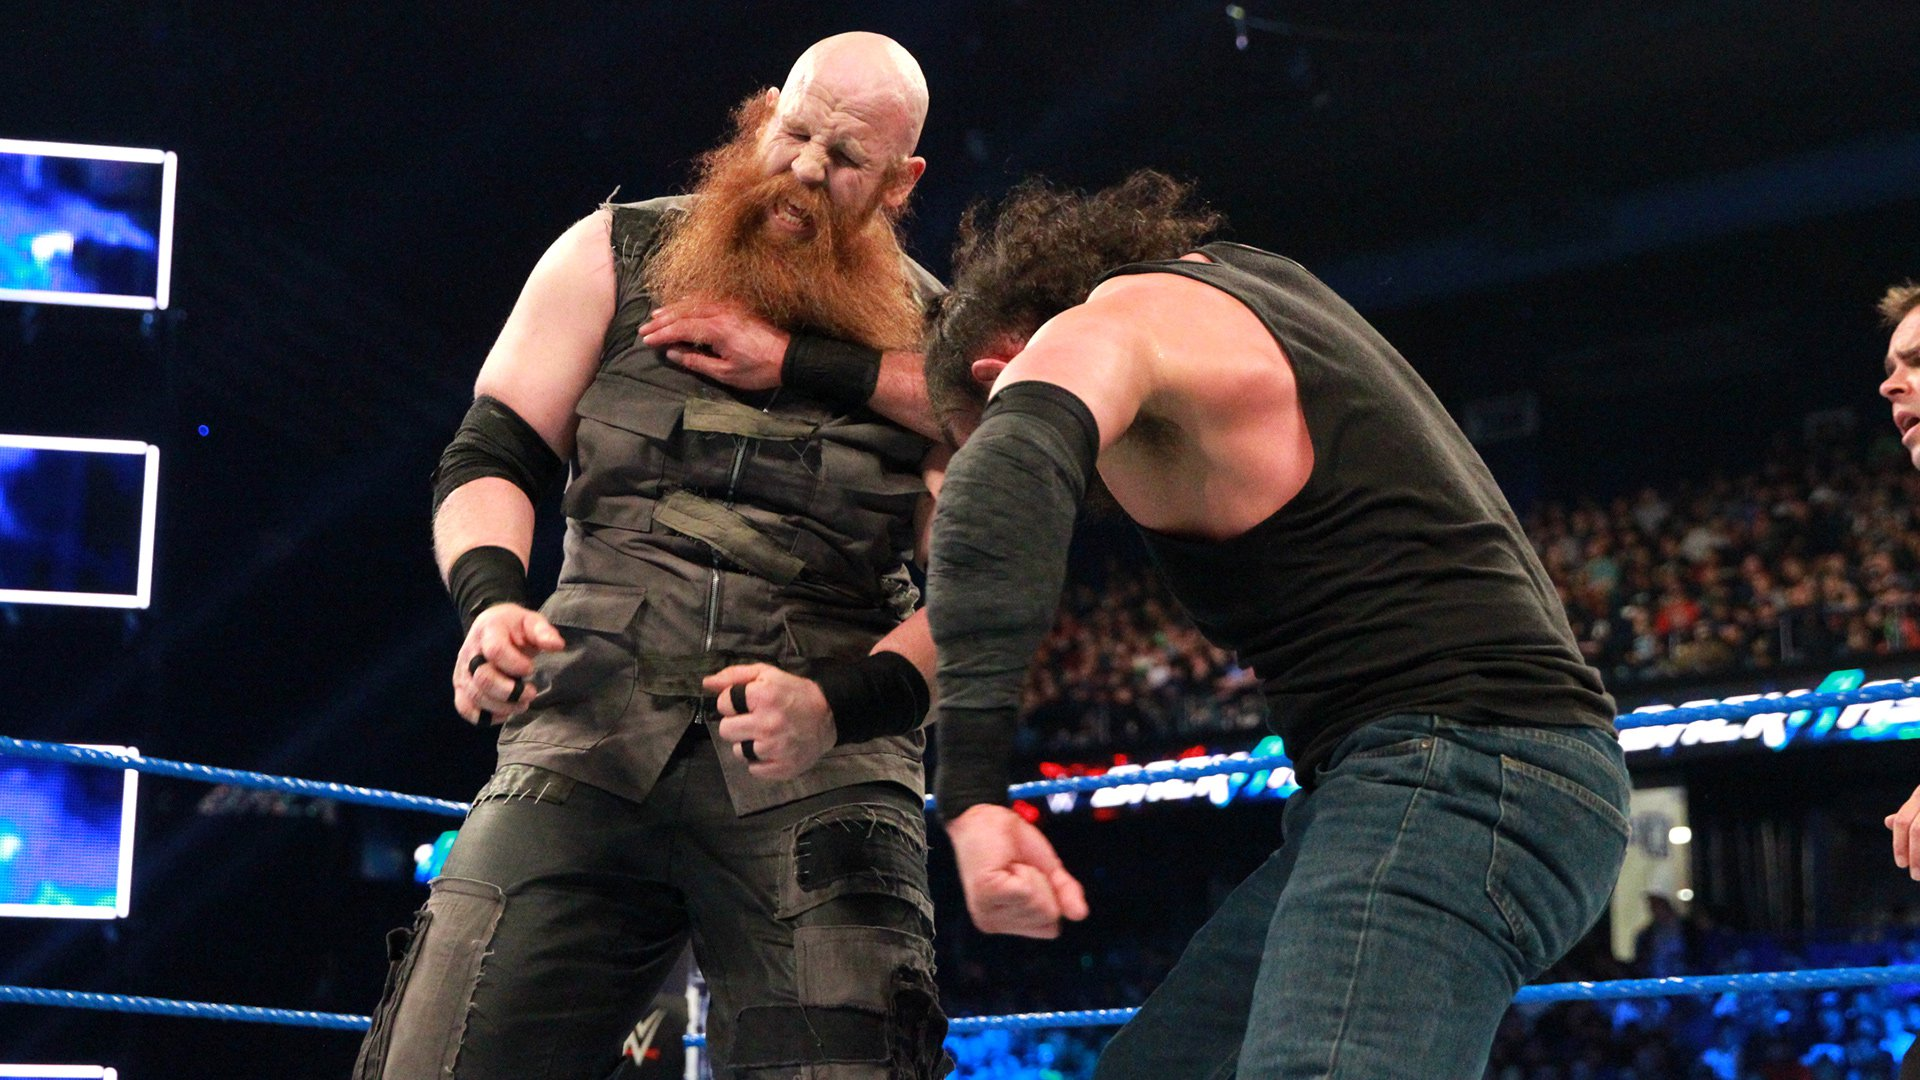 Both Harper and Rowan use their uncanny size and strength to their advantage.